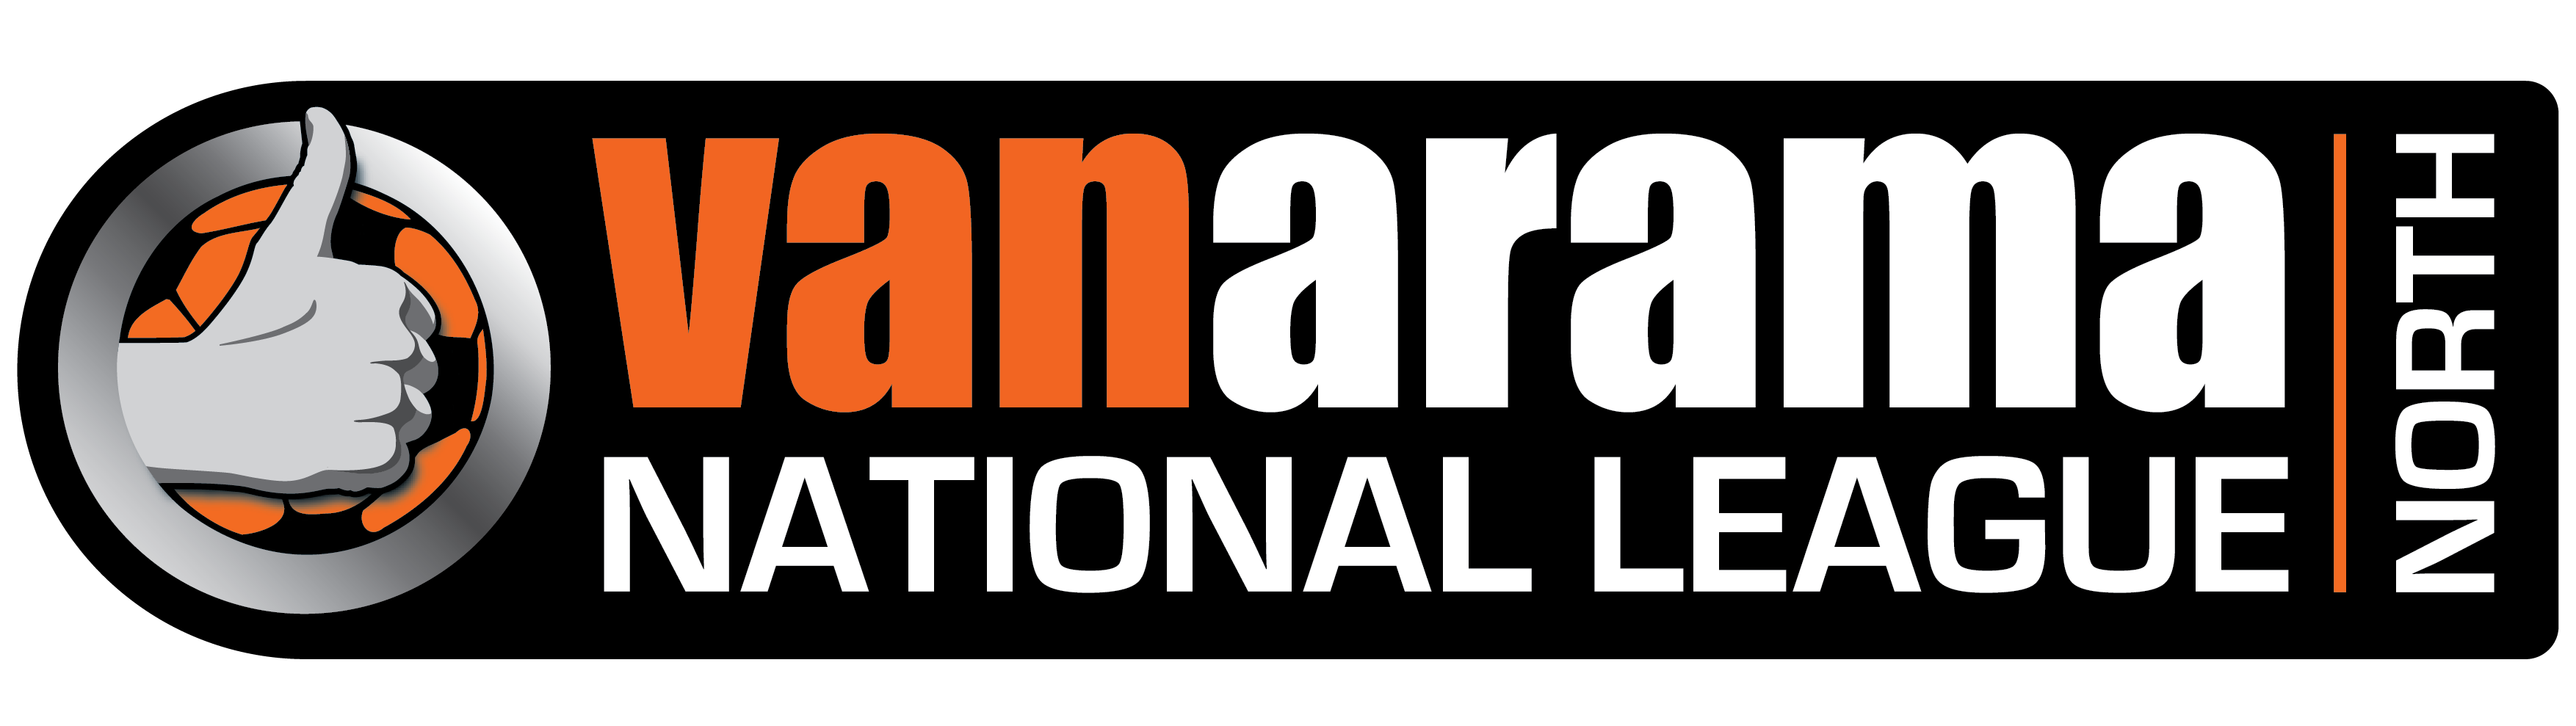 Vanarama national league name change - English conference national league table ...